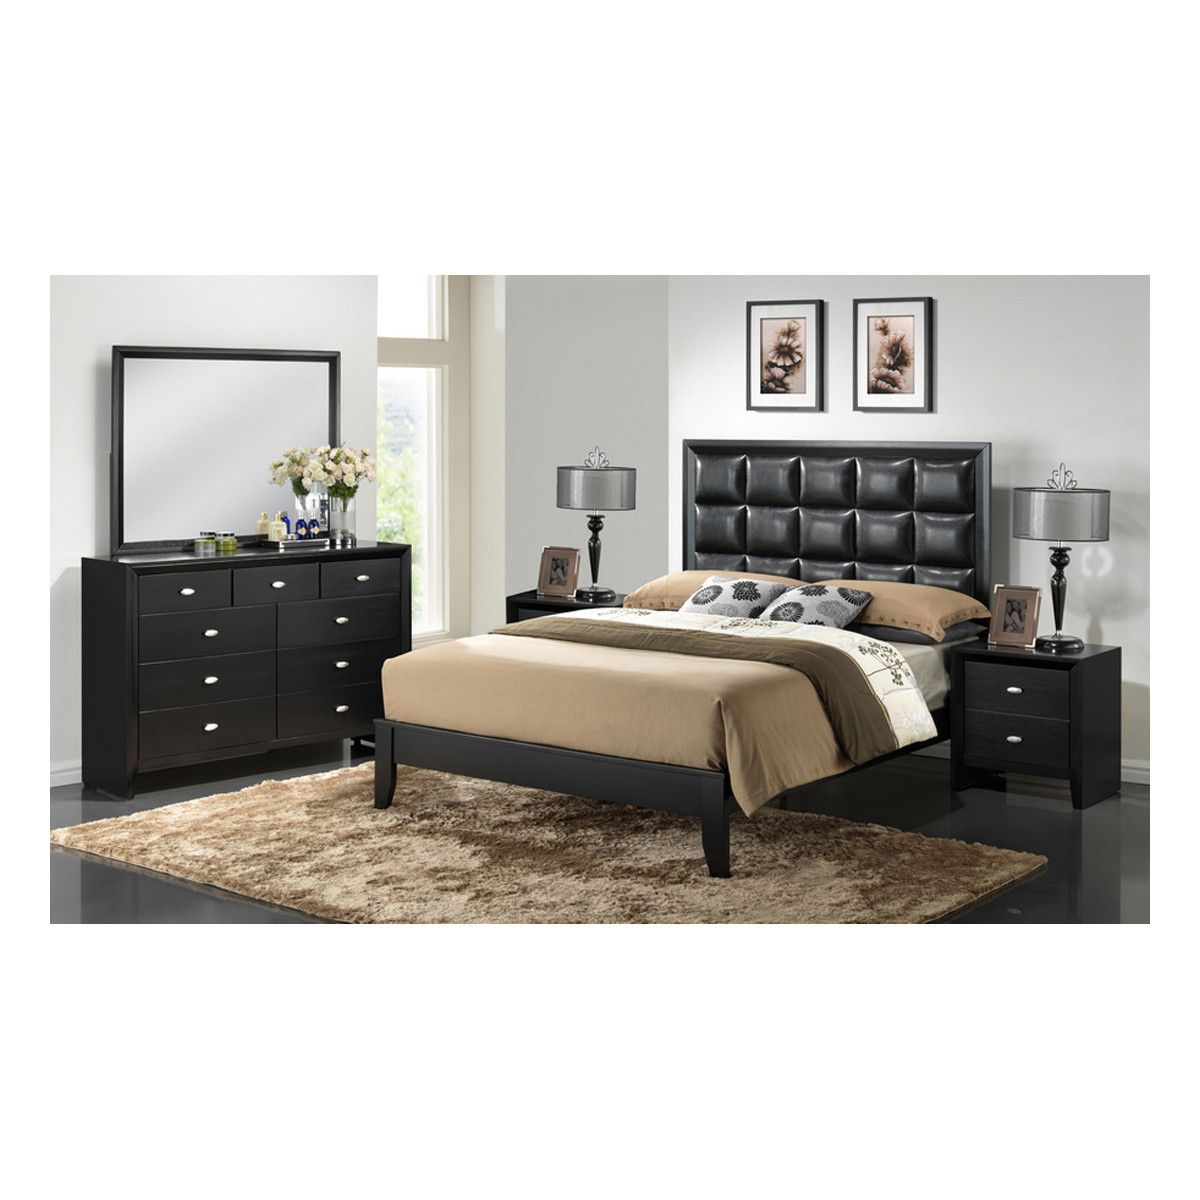 5 star master bedrooms  Carolina Black Piece Modern Bedroom Set  Products  Pinterest